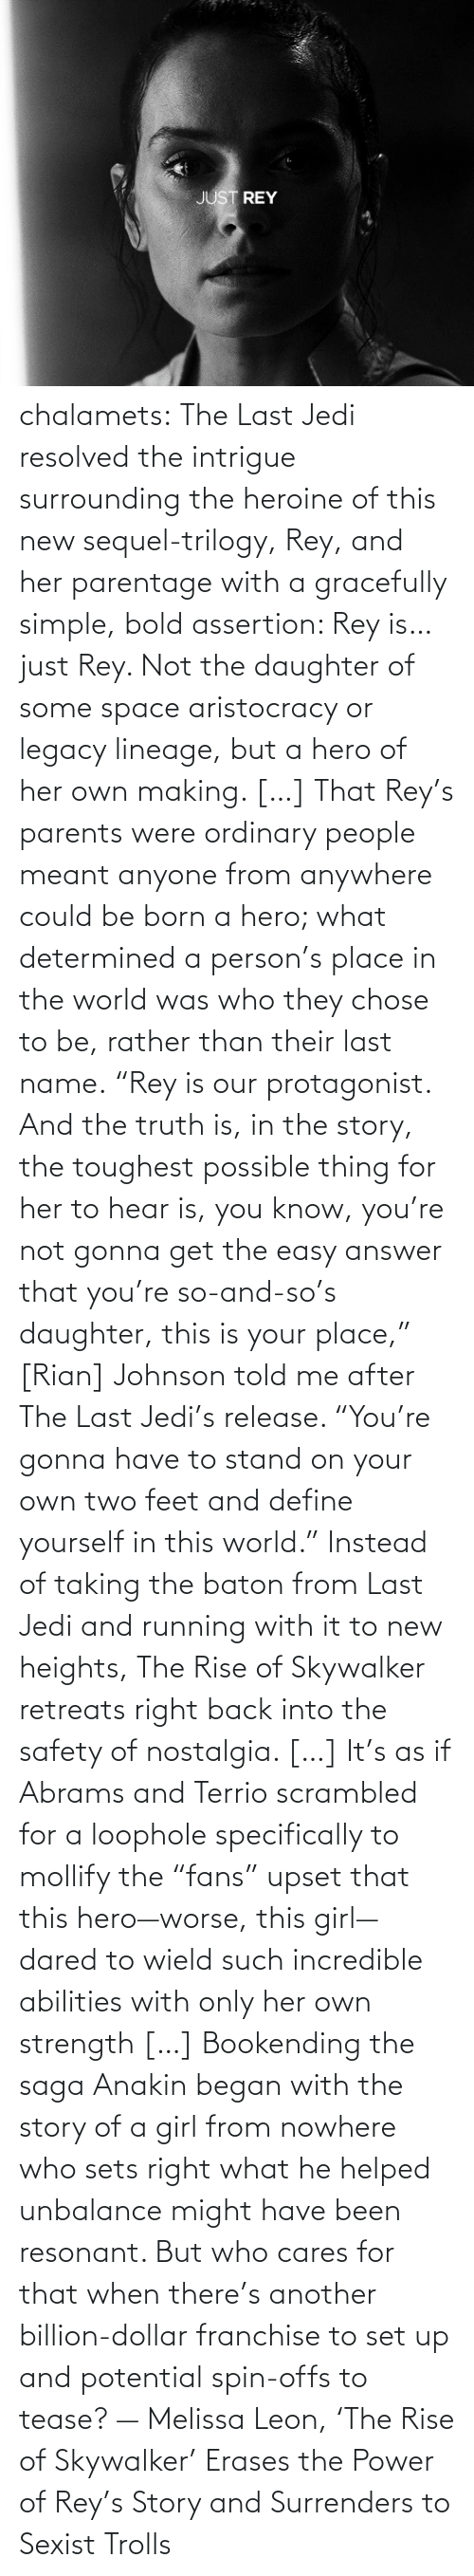 "name: chalamets:  The Last Jedi resolved the intrigue surrounding the heroine of this new sequel-trilogy, Rey, and her parentage with a gracefully simple, bold assertion: Rey is… just Rey. Not the daughter of some space aristocracy or legacy lineage, but a hero of her own making. […] That Rey's parents were ordinary people meant anyone from anywhere could be born a hero; what determined a person's place in the world was who they chose to be, rather than their last name. ""Rey is our protagonist. And the truth is, in the story, the toughest possible thing for her to hear is, you know, you're not gonna get the easy answer that you're so-and-so's daughter, this is your place,"" [Rian] Johnson told me after The Last Jedi's release. ""You're gonna have to stand on your own two feet and define yourself in this world."" Instead of taking the baton from Last Jedi and running with it to new heights, The Rise of Skywalker retreats right back into the safety of nostalgia. […] It's as if Abrams and Terrio scrambled for a loophole specifically to mollify the ""fans"" upset that this hero—worse, this girl—dared to wield such incredible abilities with only her own strength […] Bookending the saga Anakin began with the story of a girl from nowhere who sets right what he helped unbalance might have been resonant. But who cares for that when there's another billion-dollar franchise to set up and potential spin-offs to tease? — Melissa Leon, 'The Rise of Skywalker' Erases the Power of Rey's Story and Surrenders to Sexist Trolls"